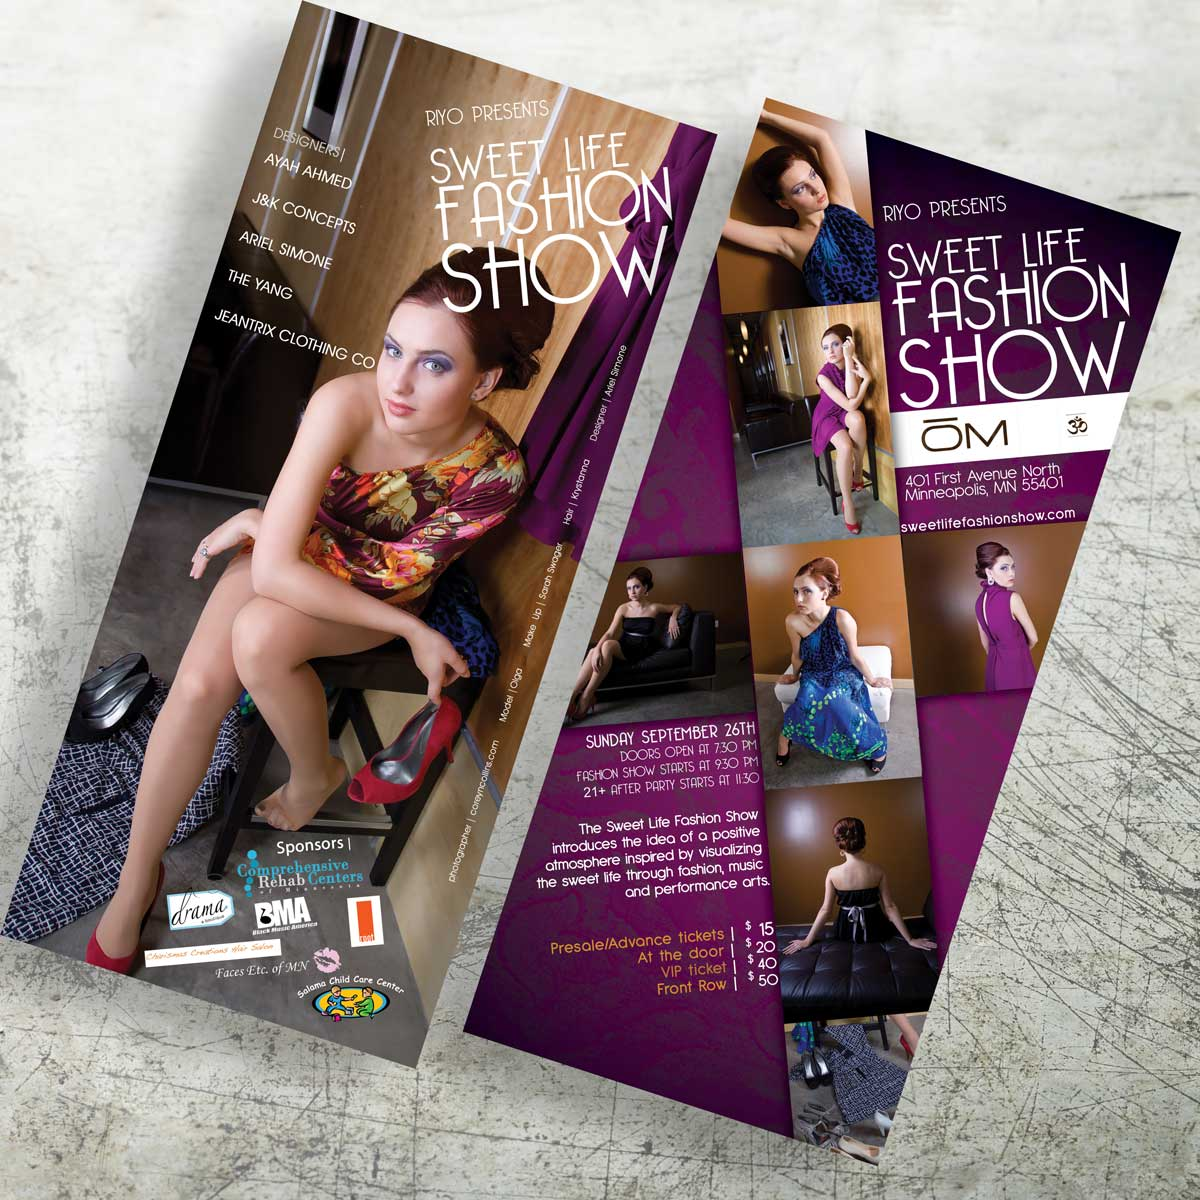 Sweet Life Fashion Show Flyer Design front and back